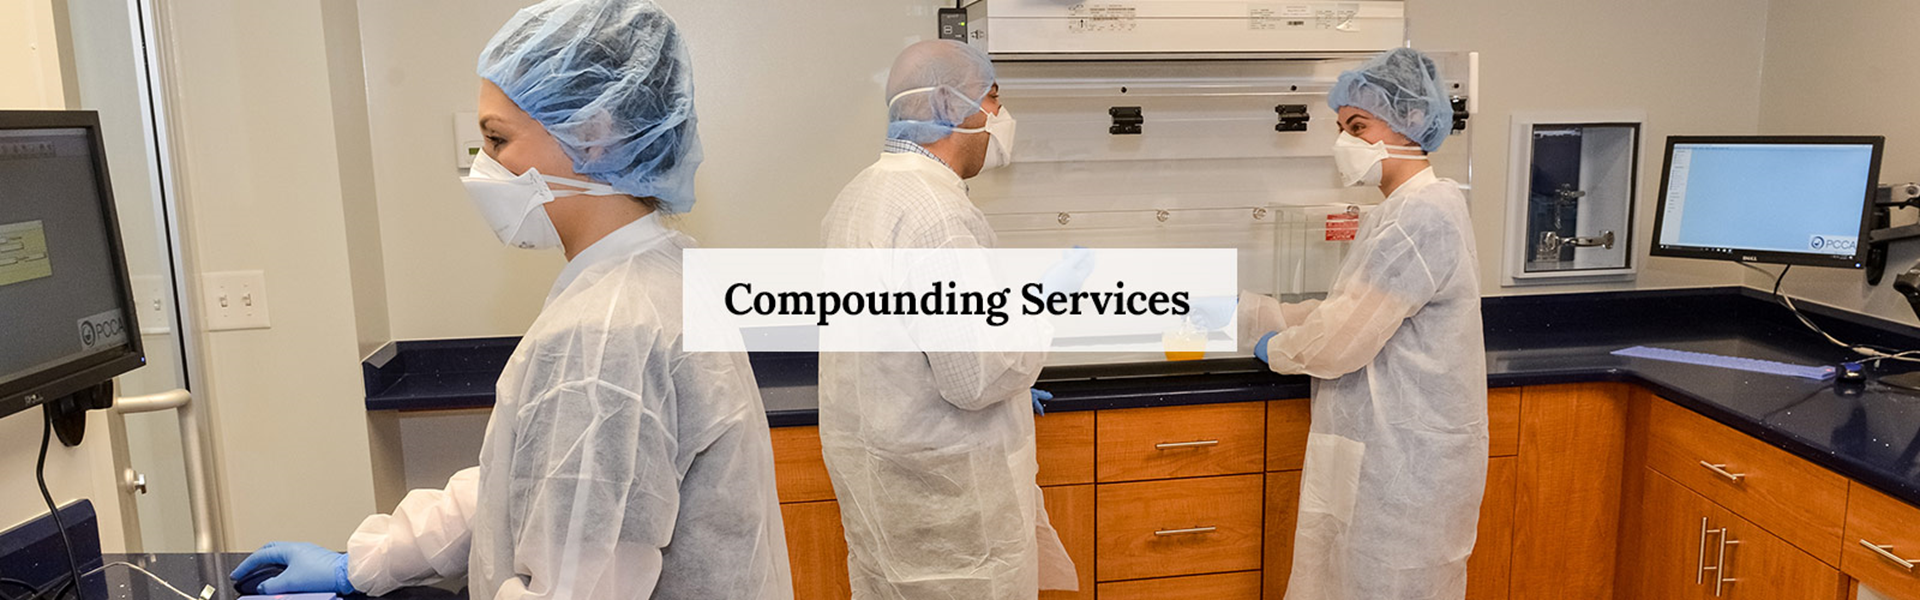 Keyes Drug Newton Compounding Pharmacy Lab